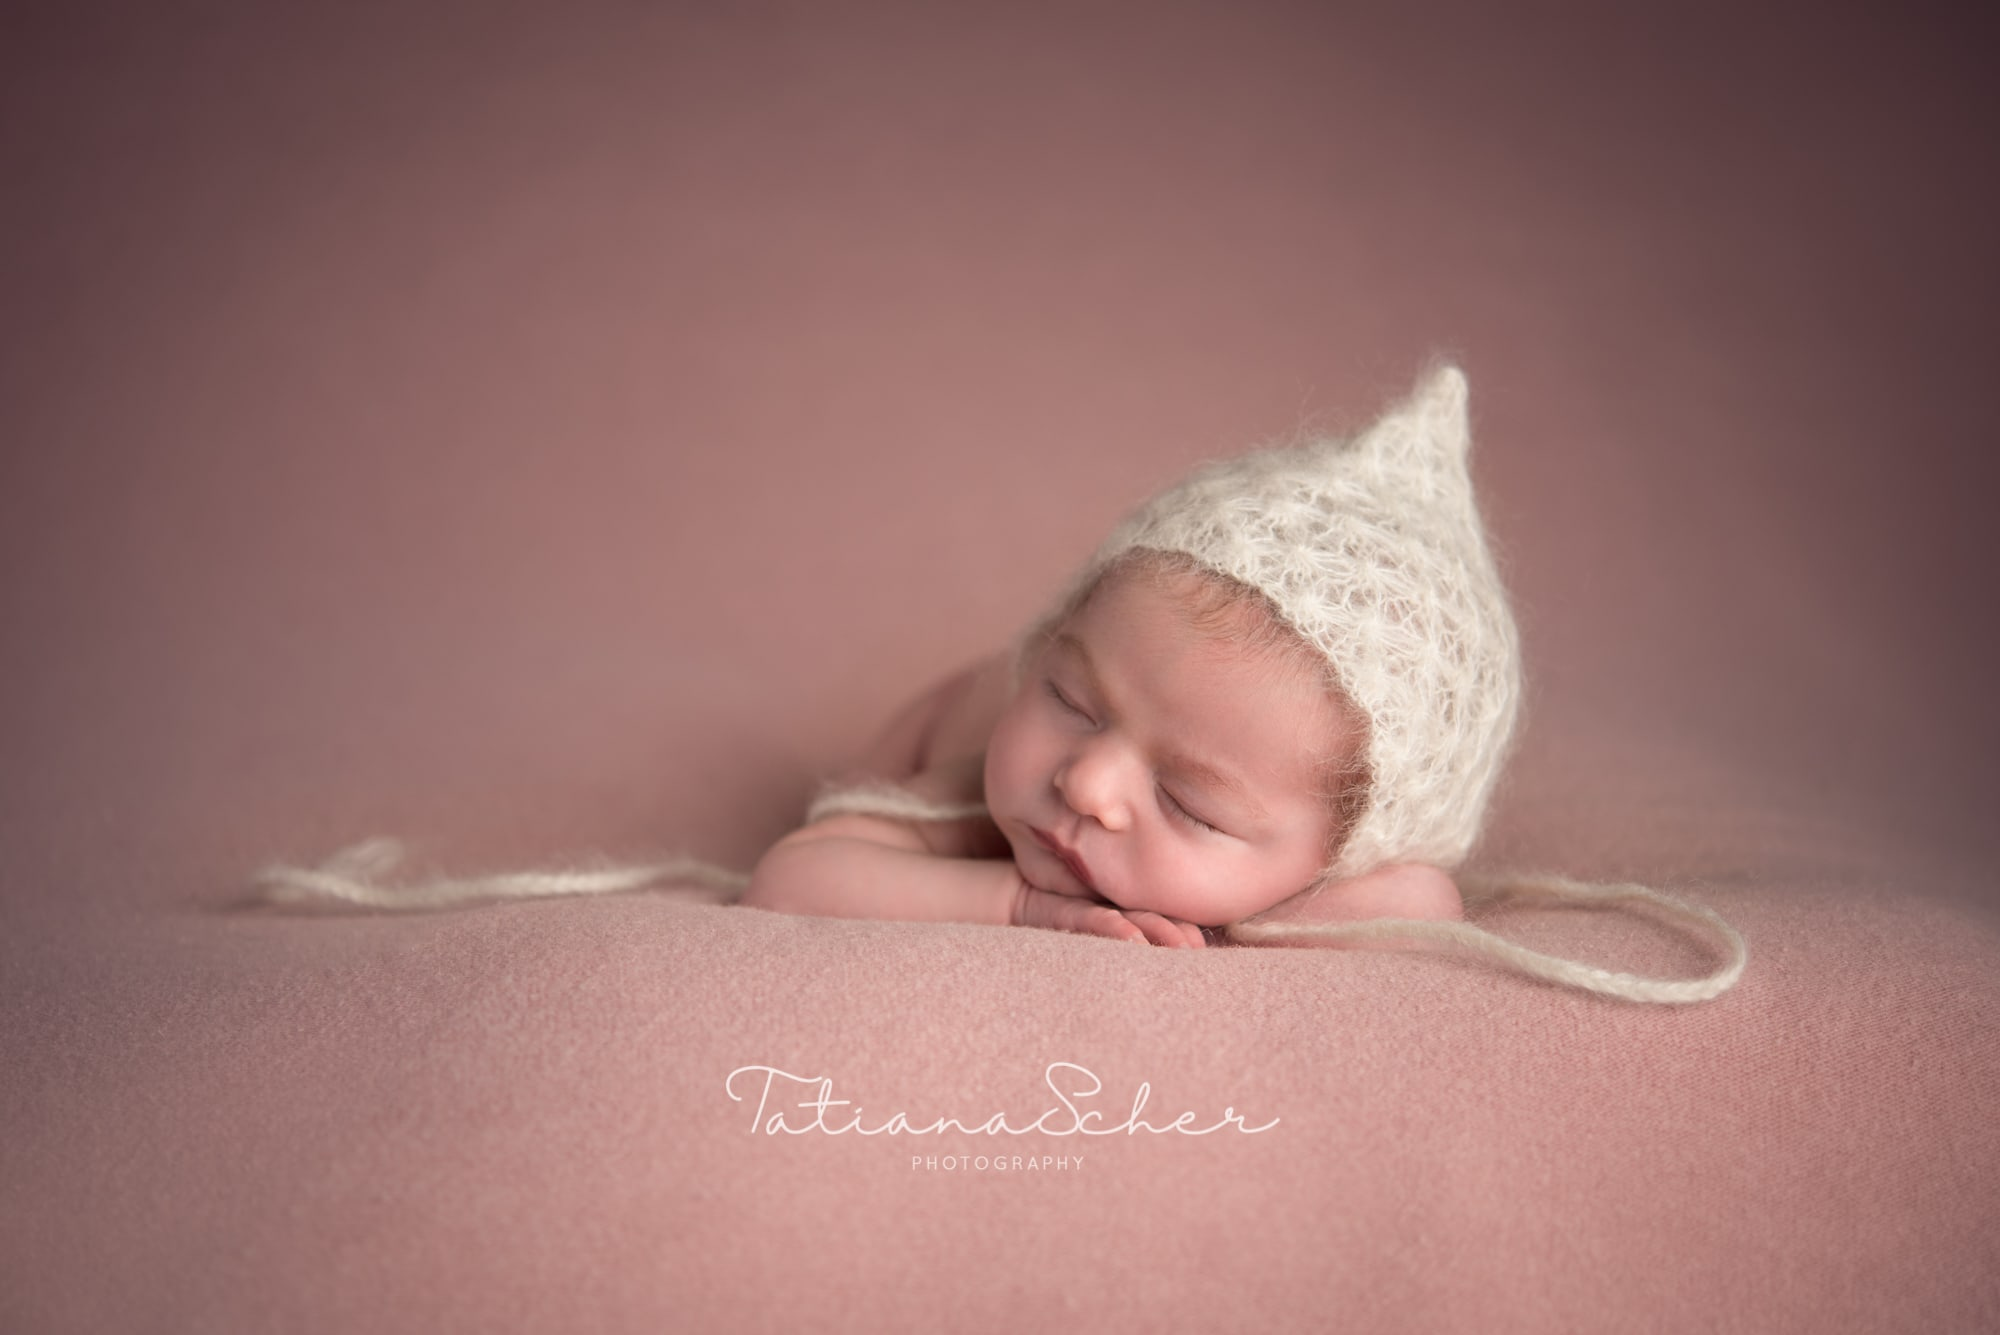 Newborn photography in carmel ca